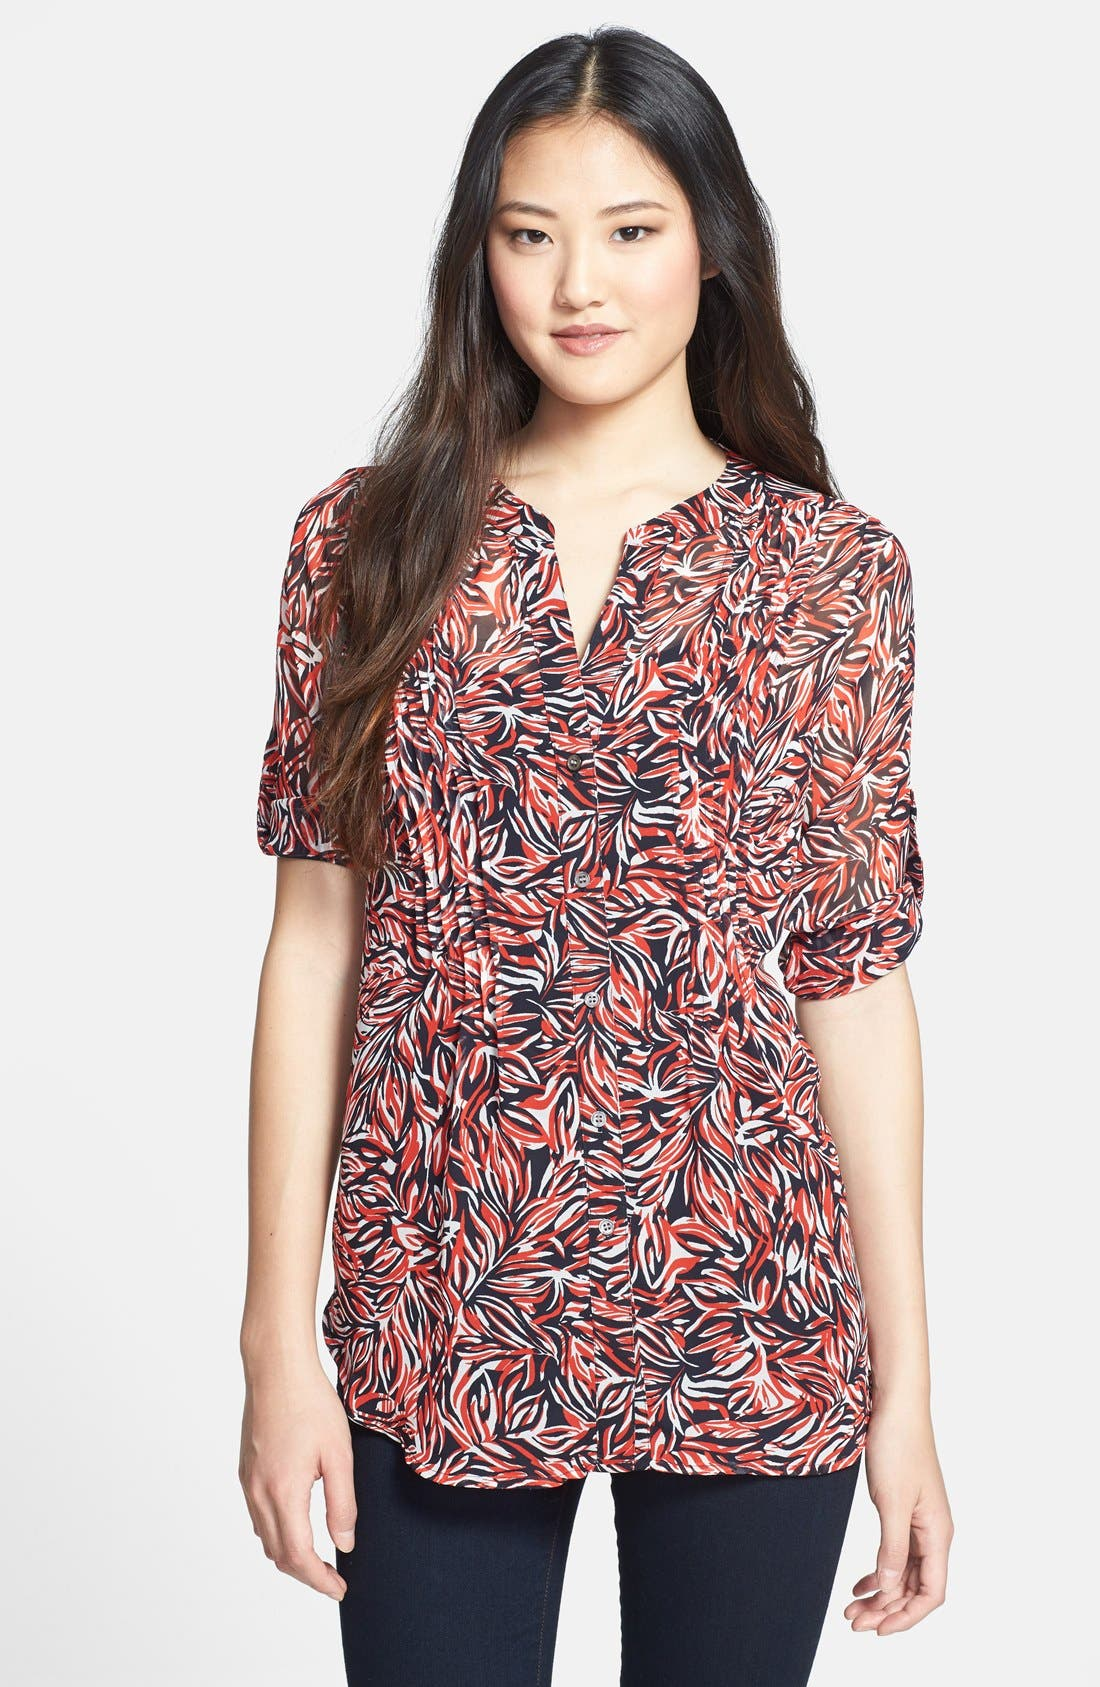 Alternate Image 1 Selected - Chaus 'Feather Floral' Print Pintuck Blouse